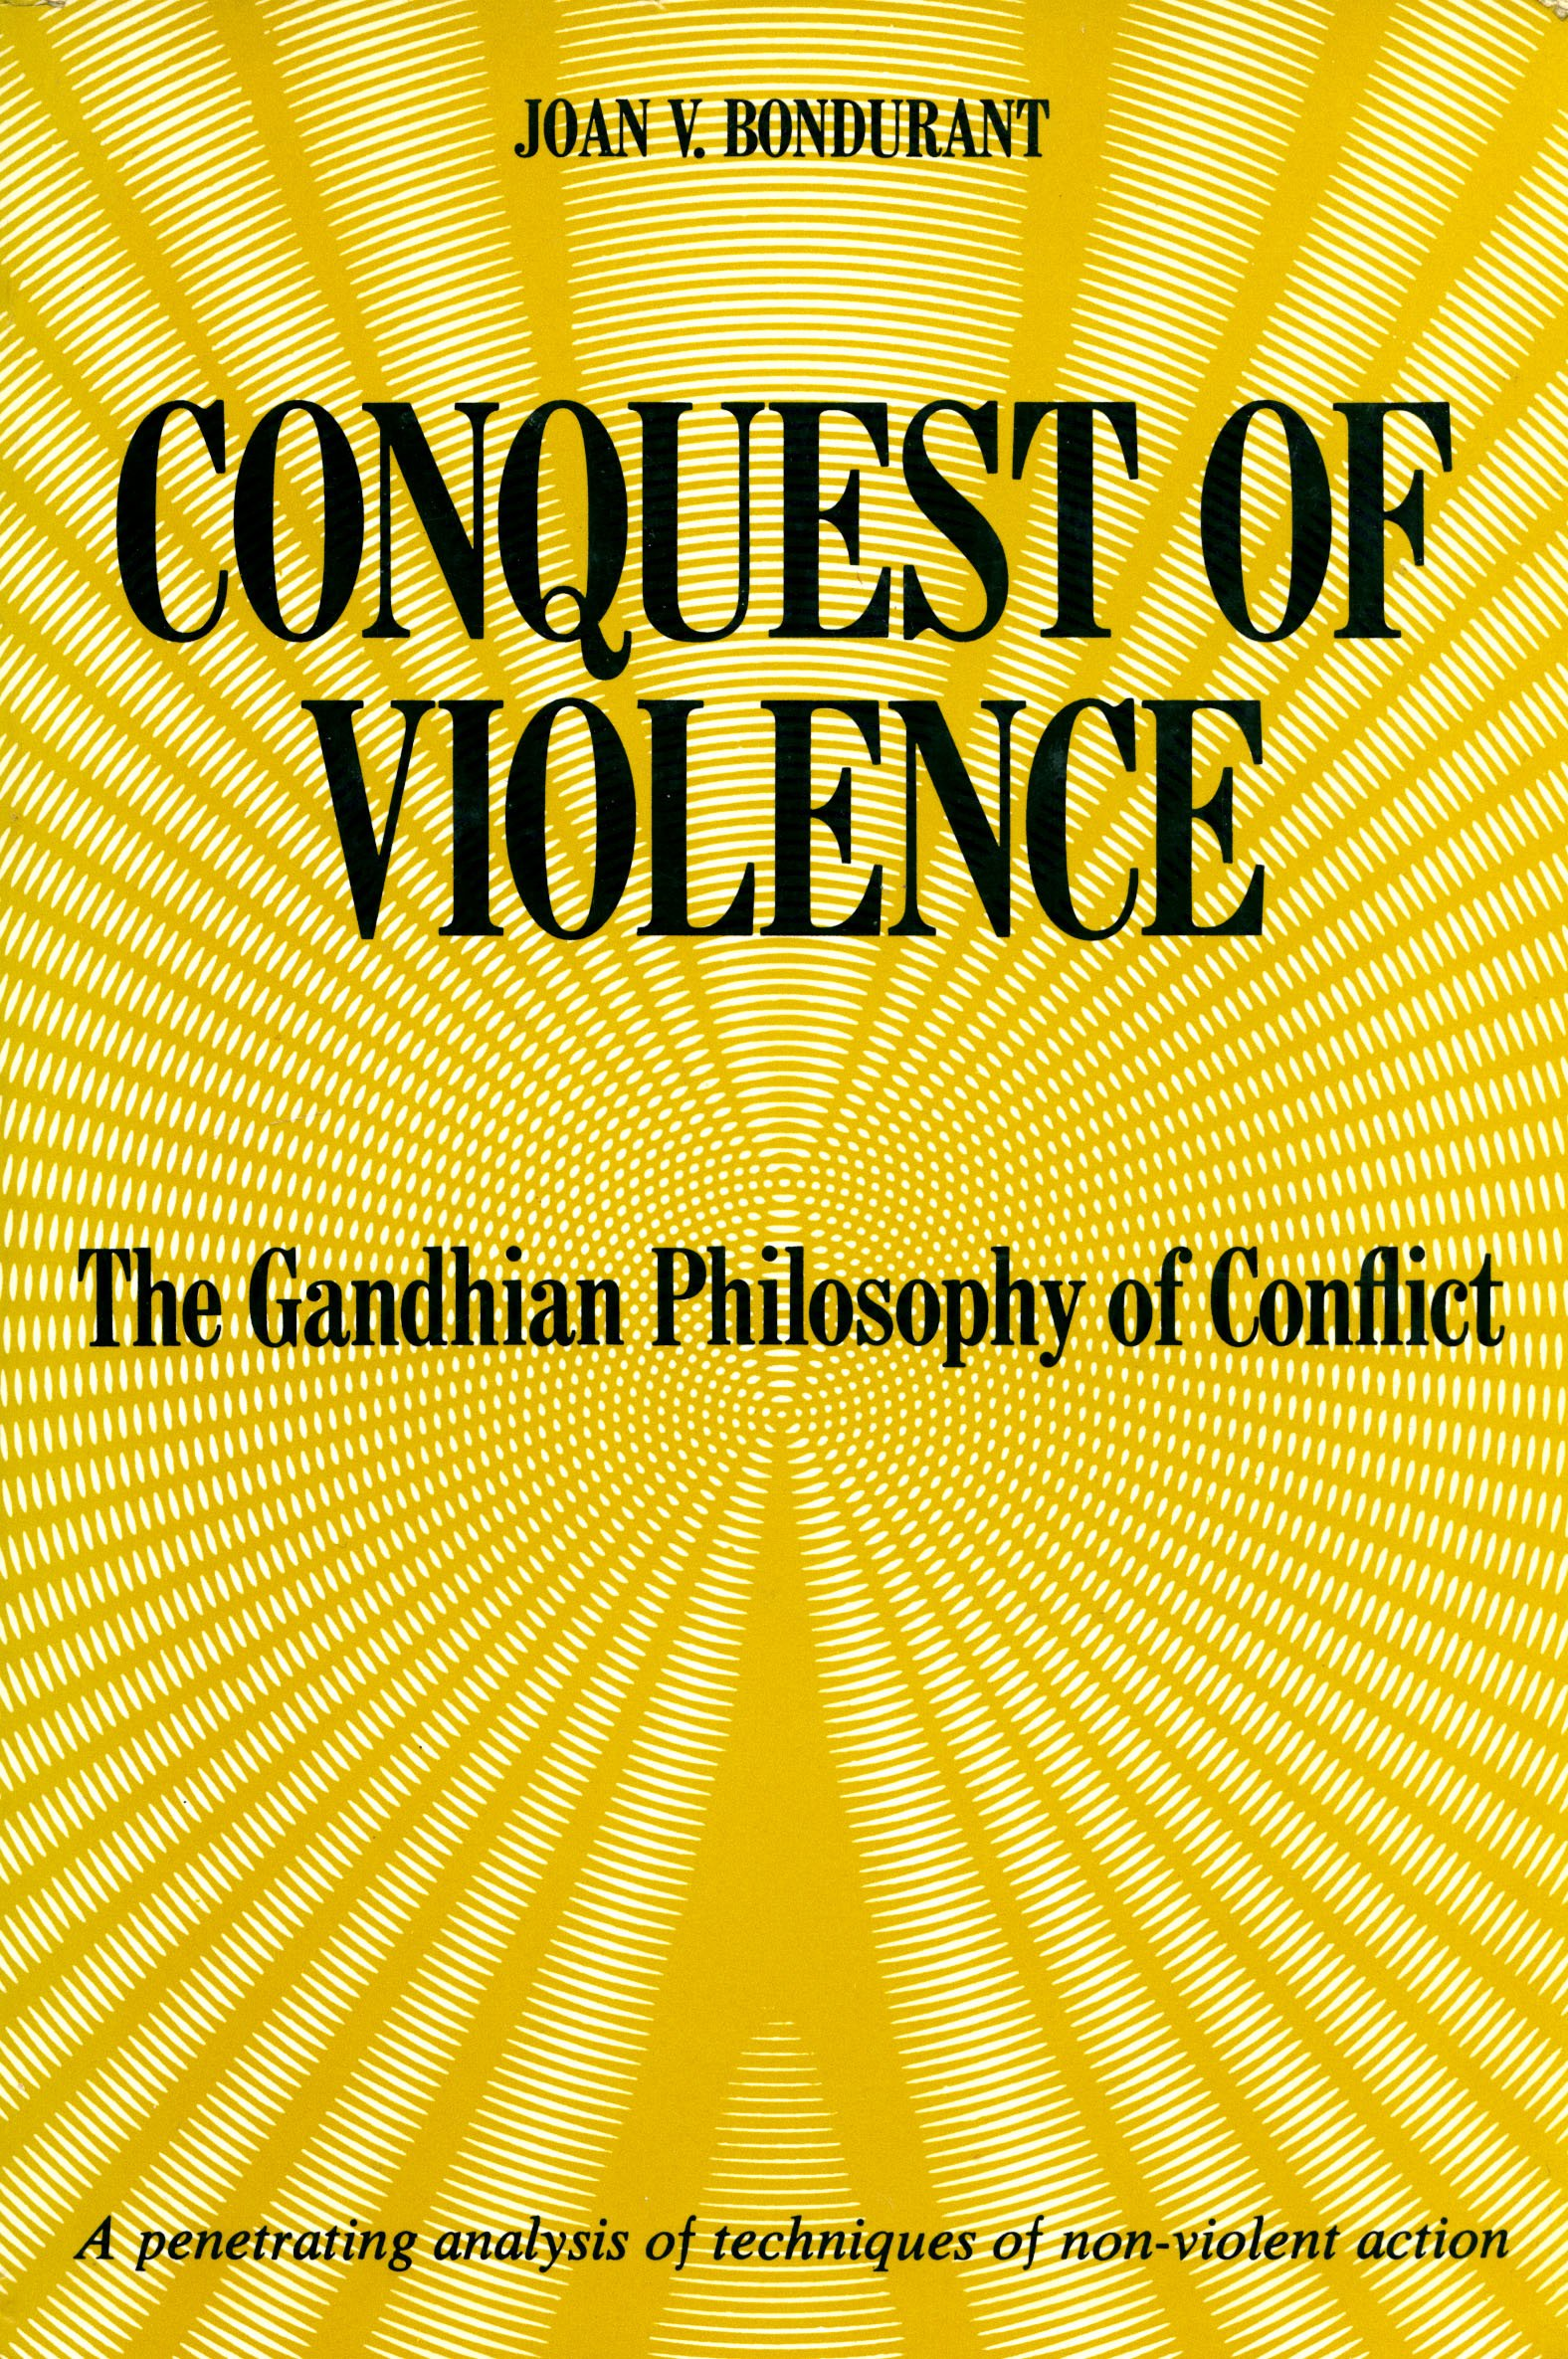 Image for Conquest of Violence: the Gandhian Philosophy of Conflict